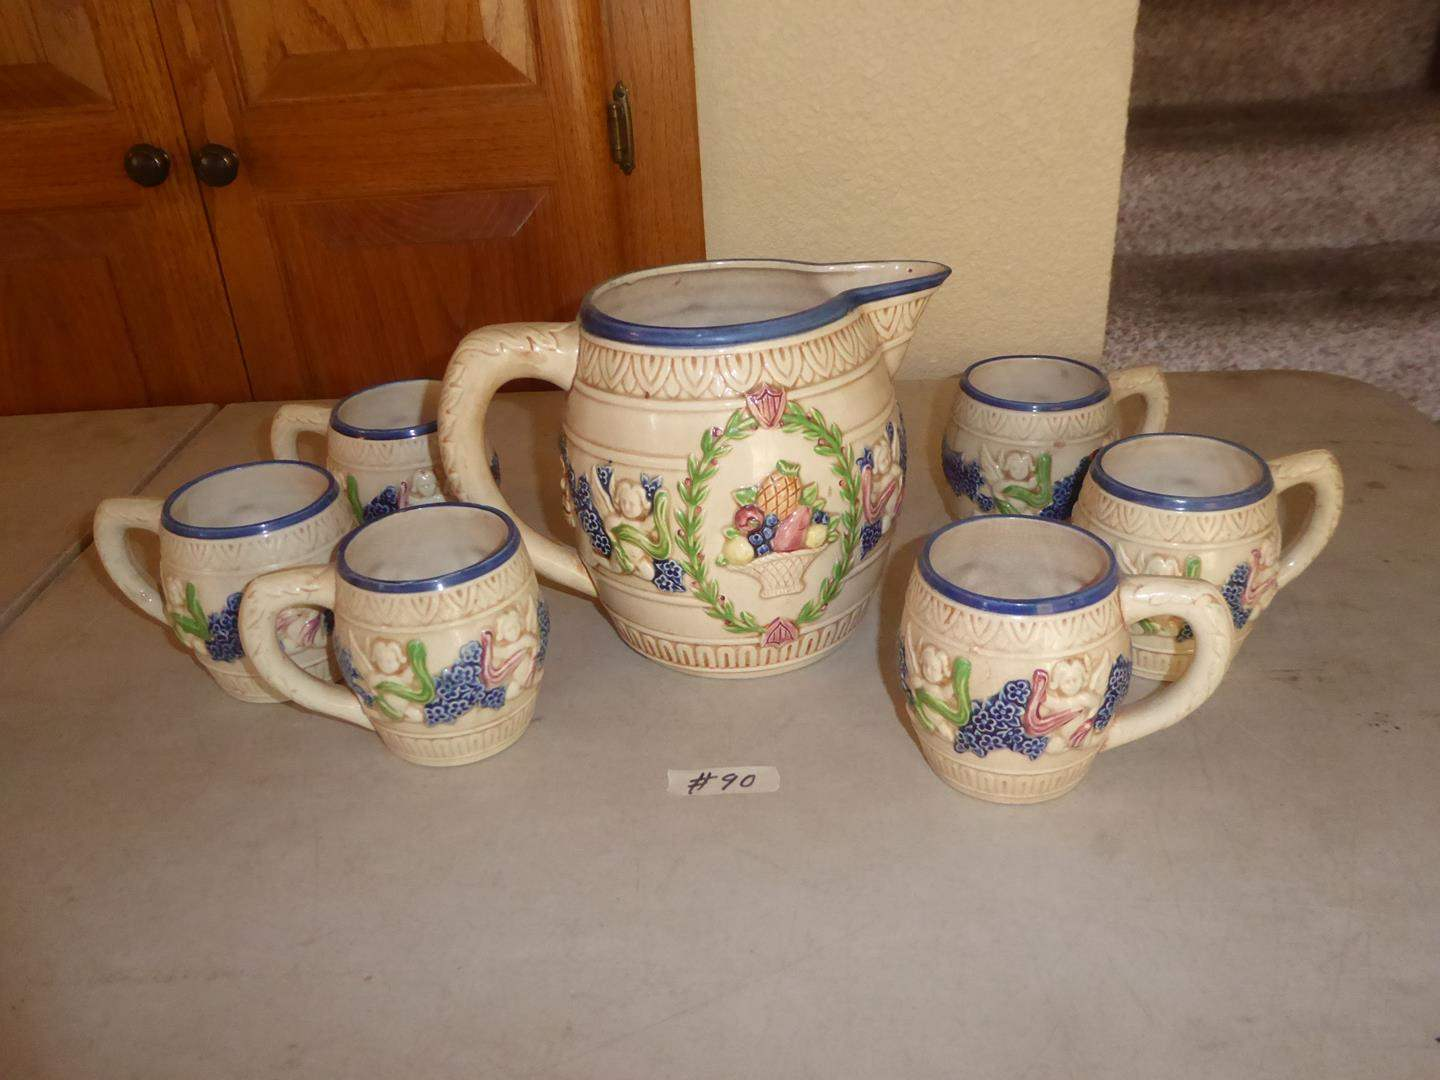 Lot # 90 - Vintage Ceramic Pitcher & Mugs w/Cherub Motif (main image)